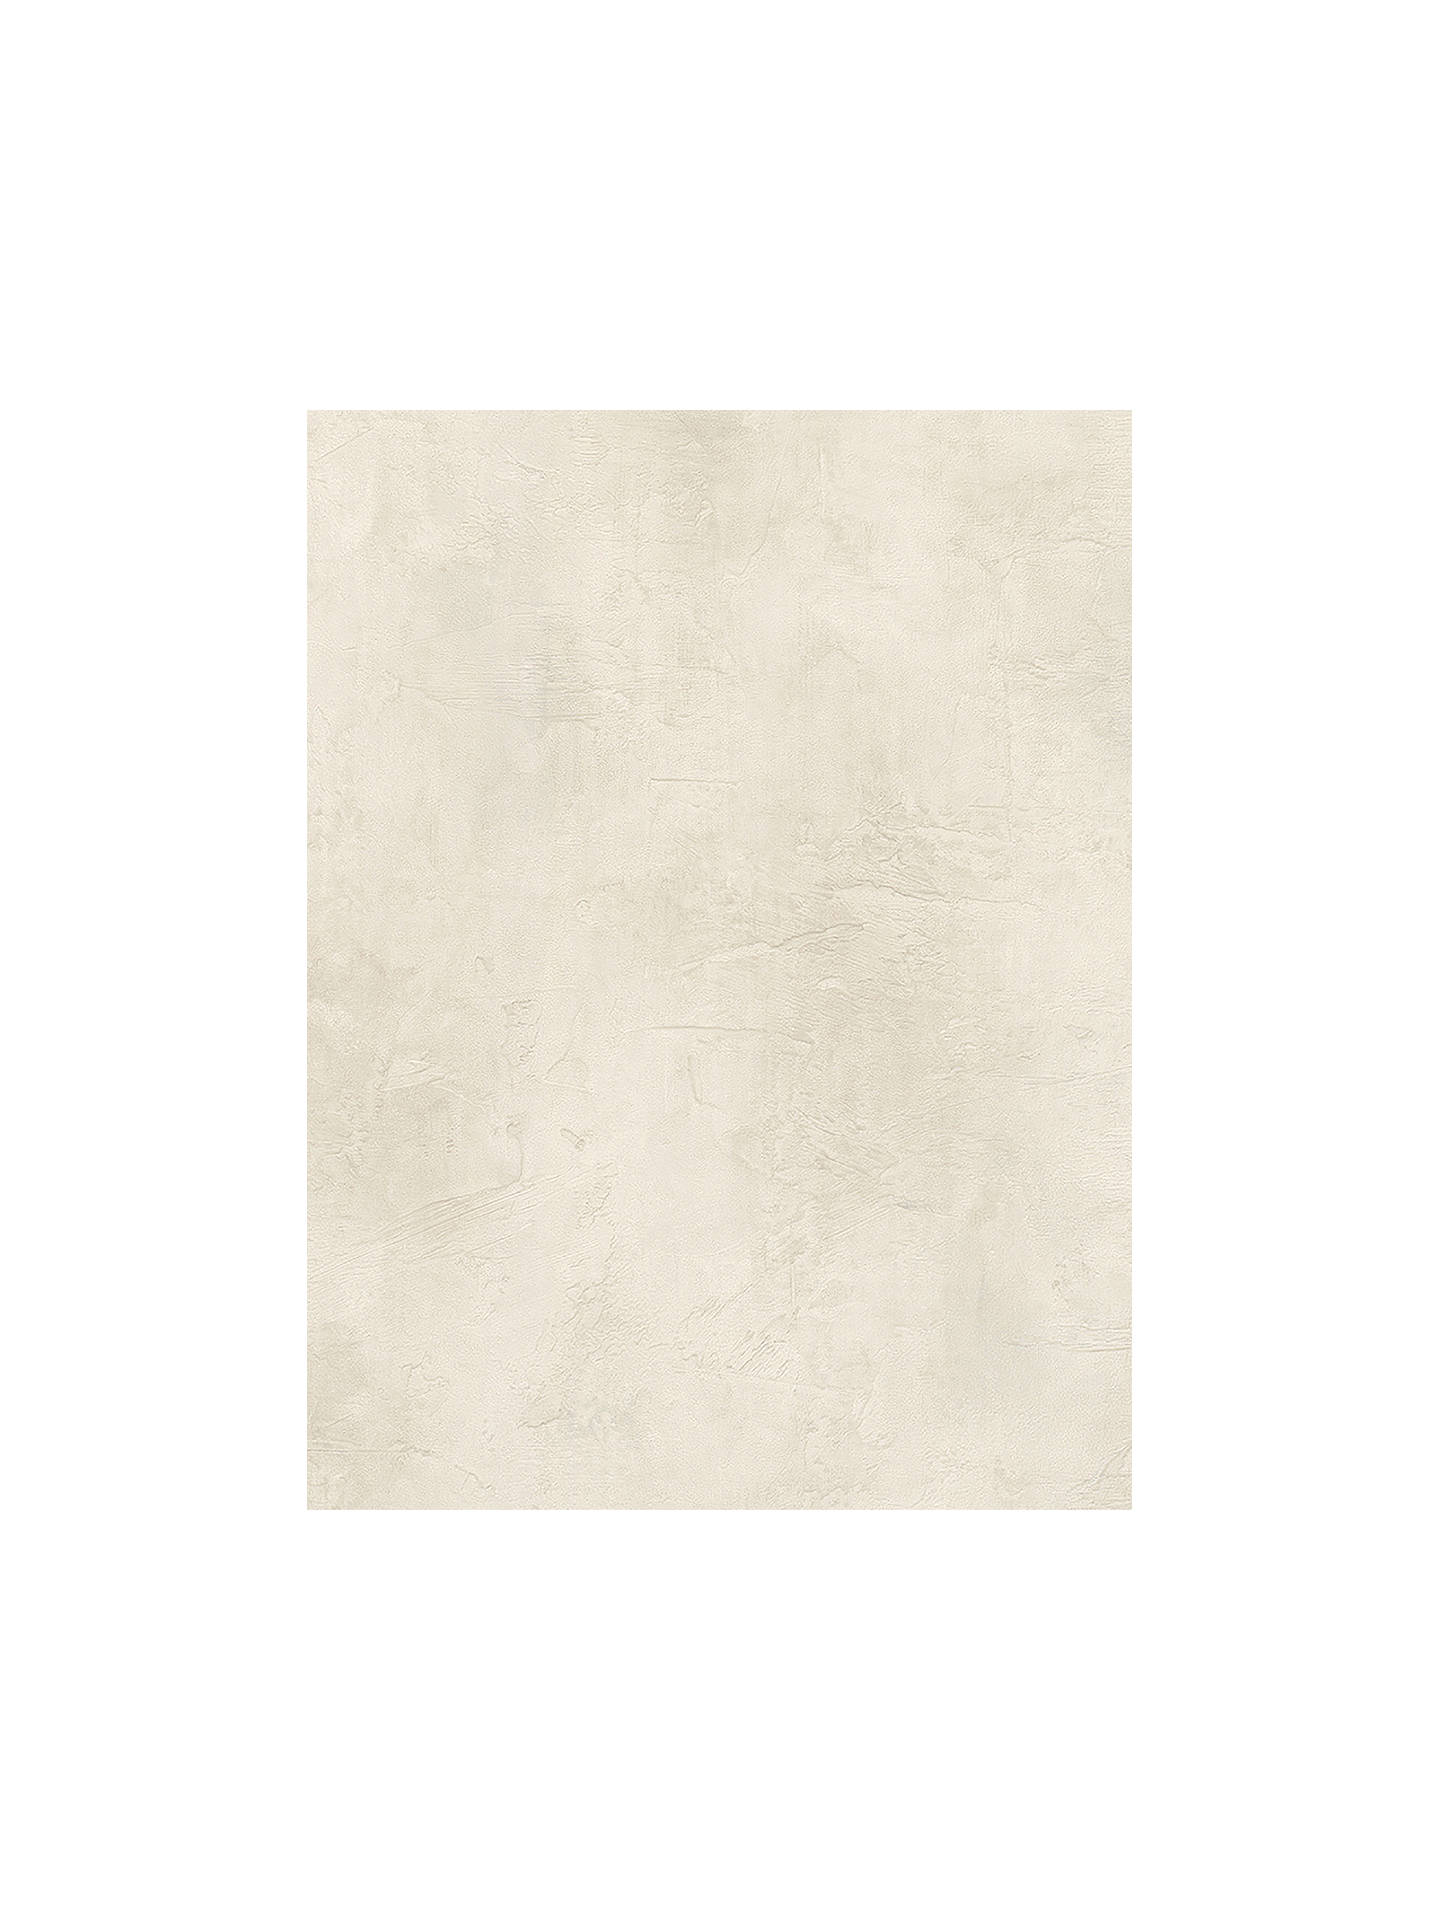 Buy Galerie Concrete Wallpaper, WP59308 Online at johnlewis.com